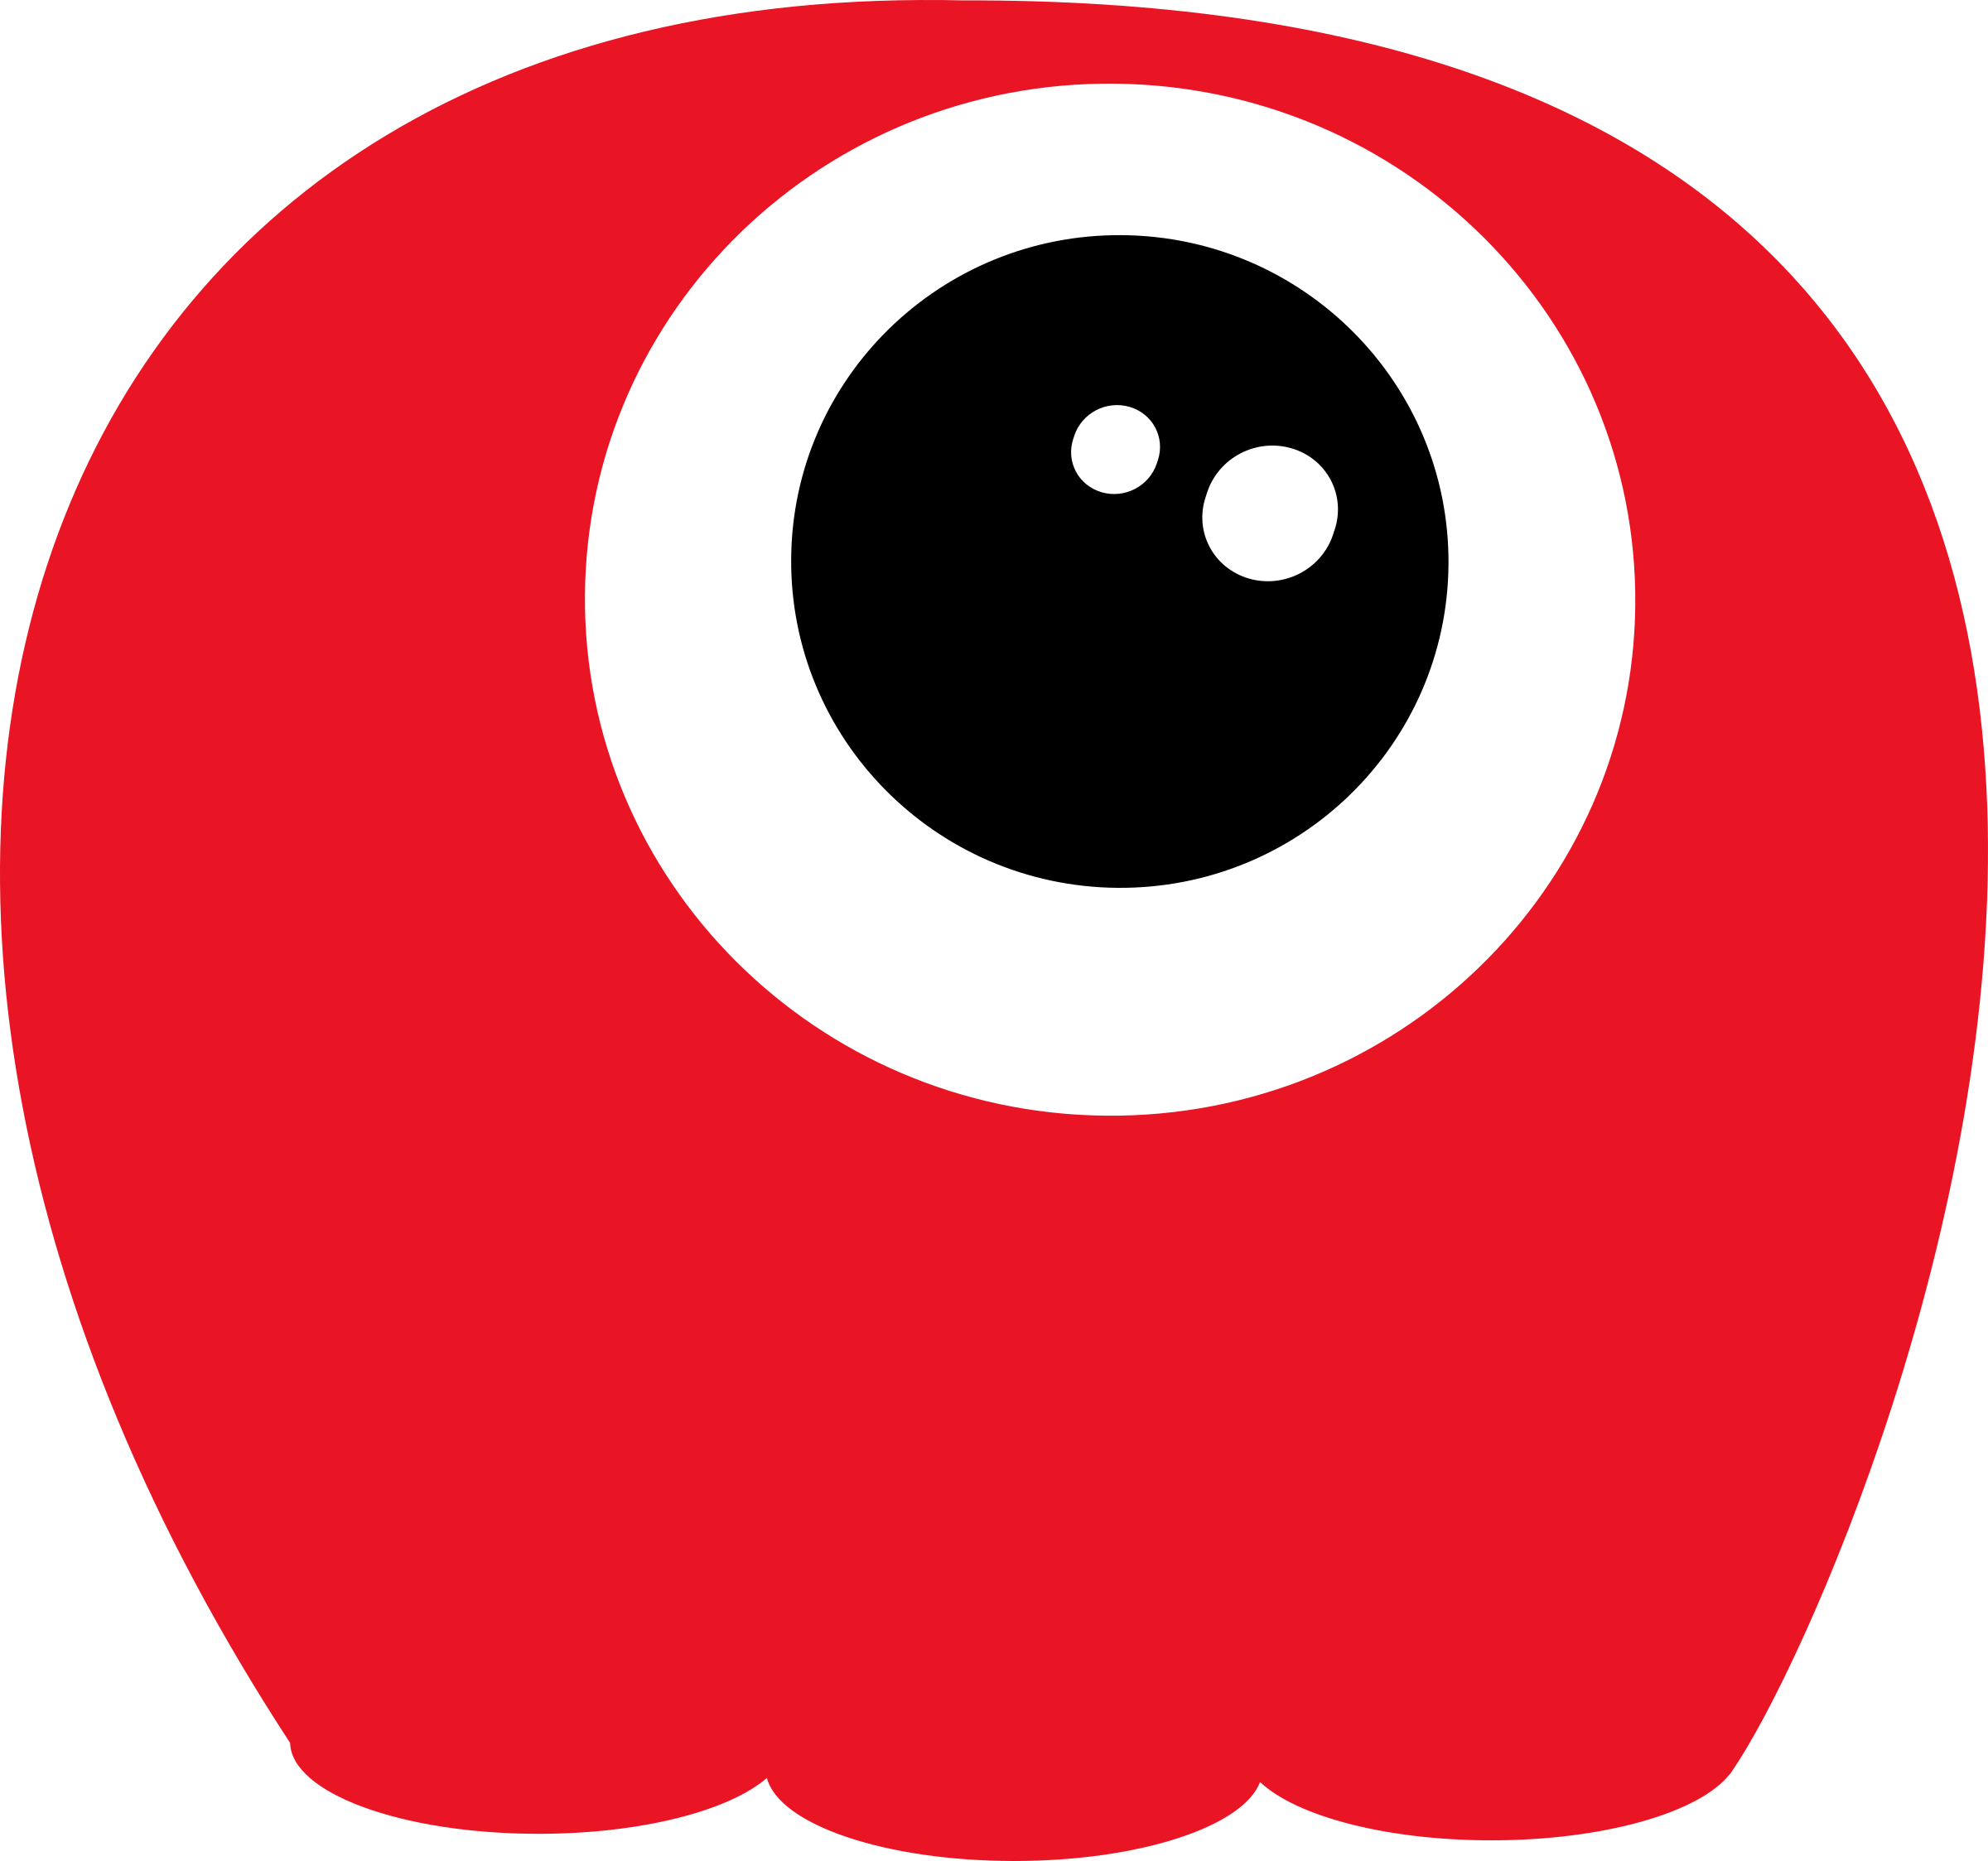 Alien red eye no. One clipart cartoon